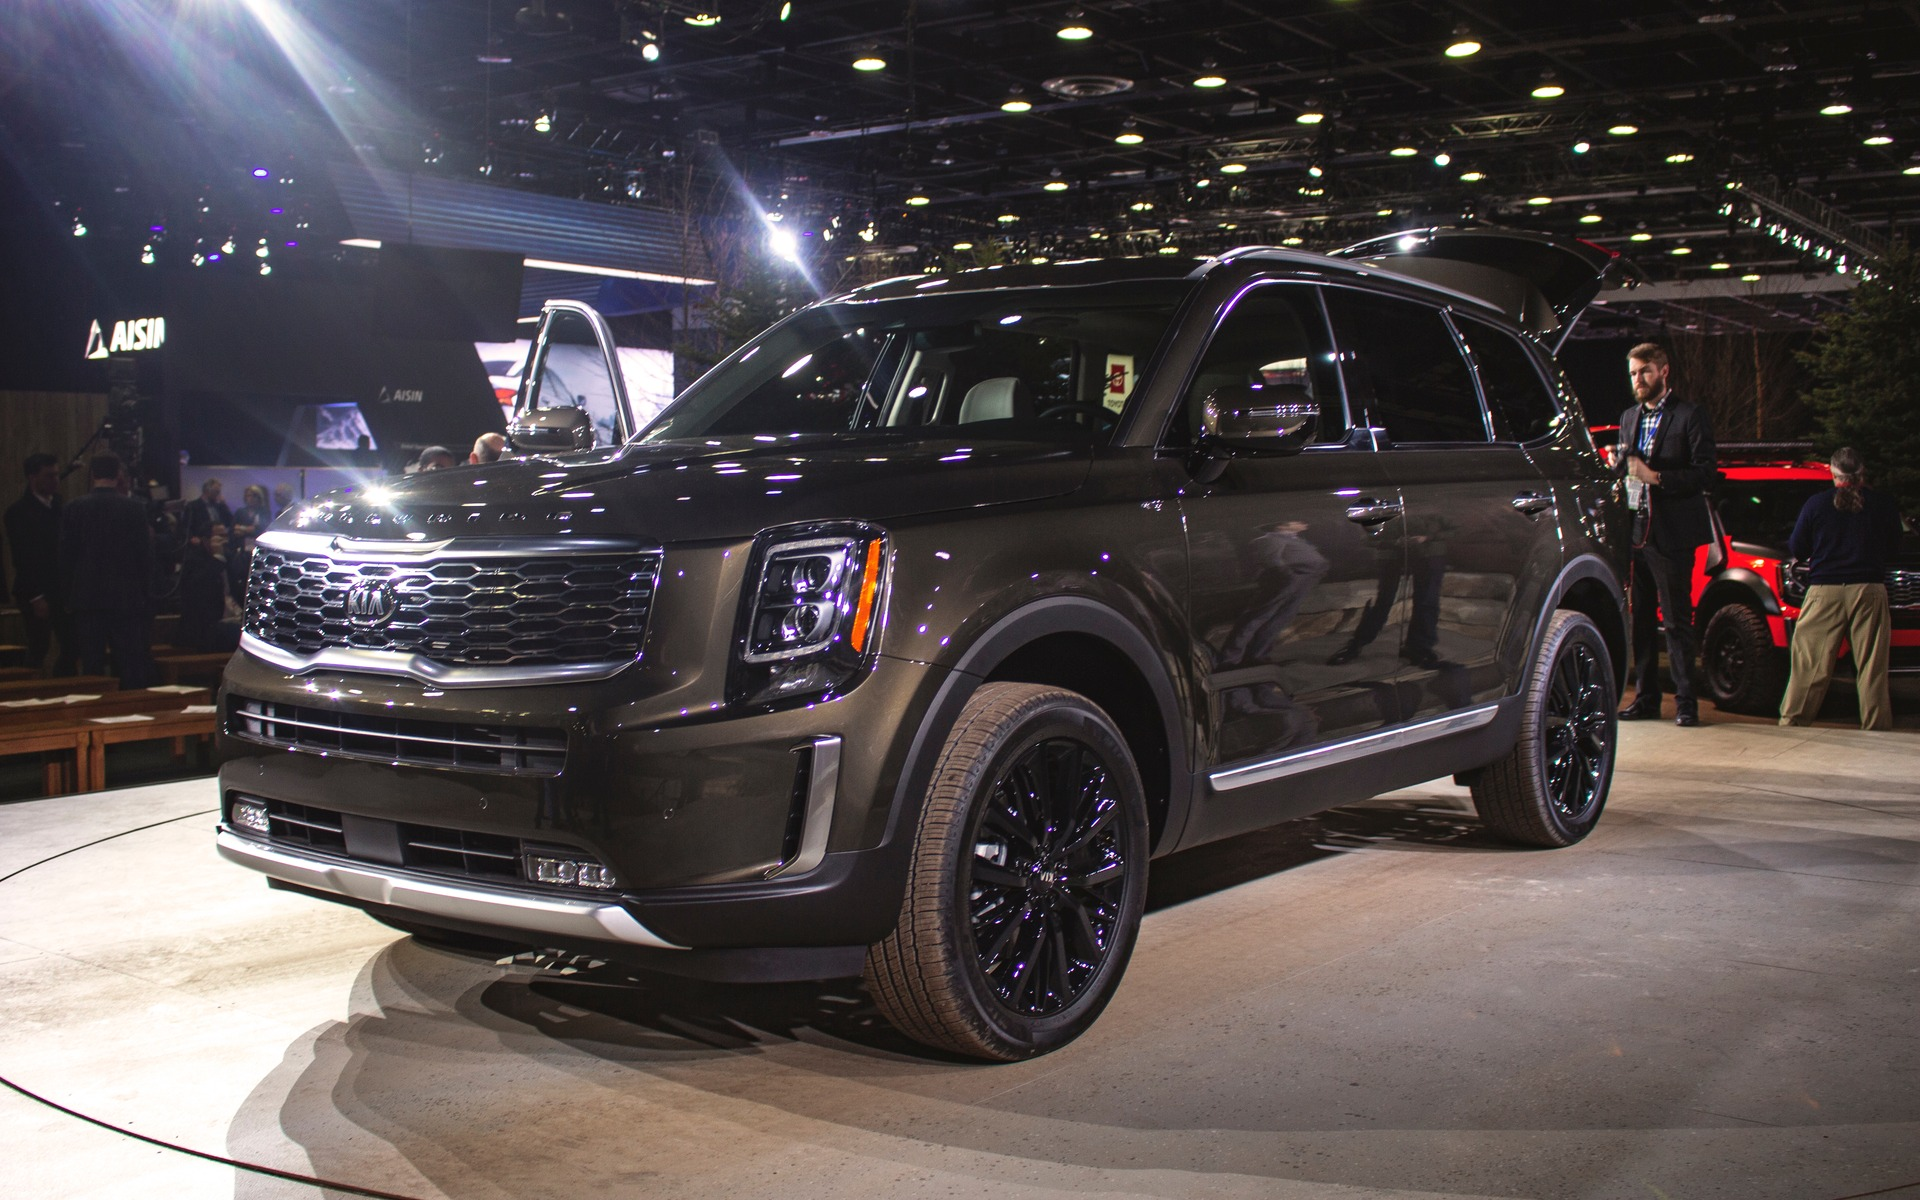 The New 2020 Kia Telluride Looks Ready for Battle - The Car Guide